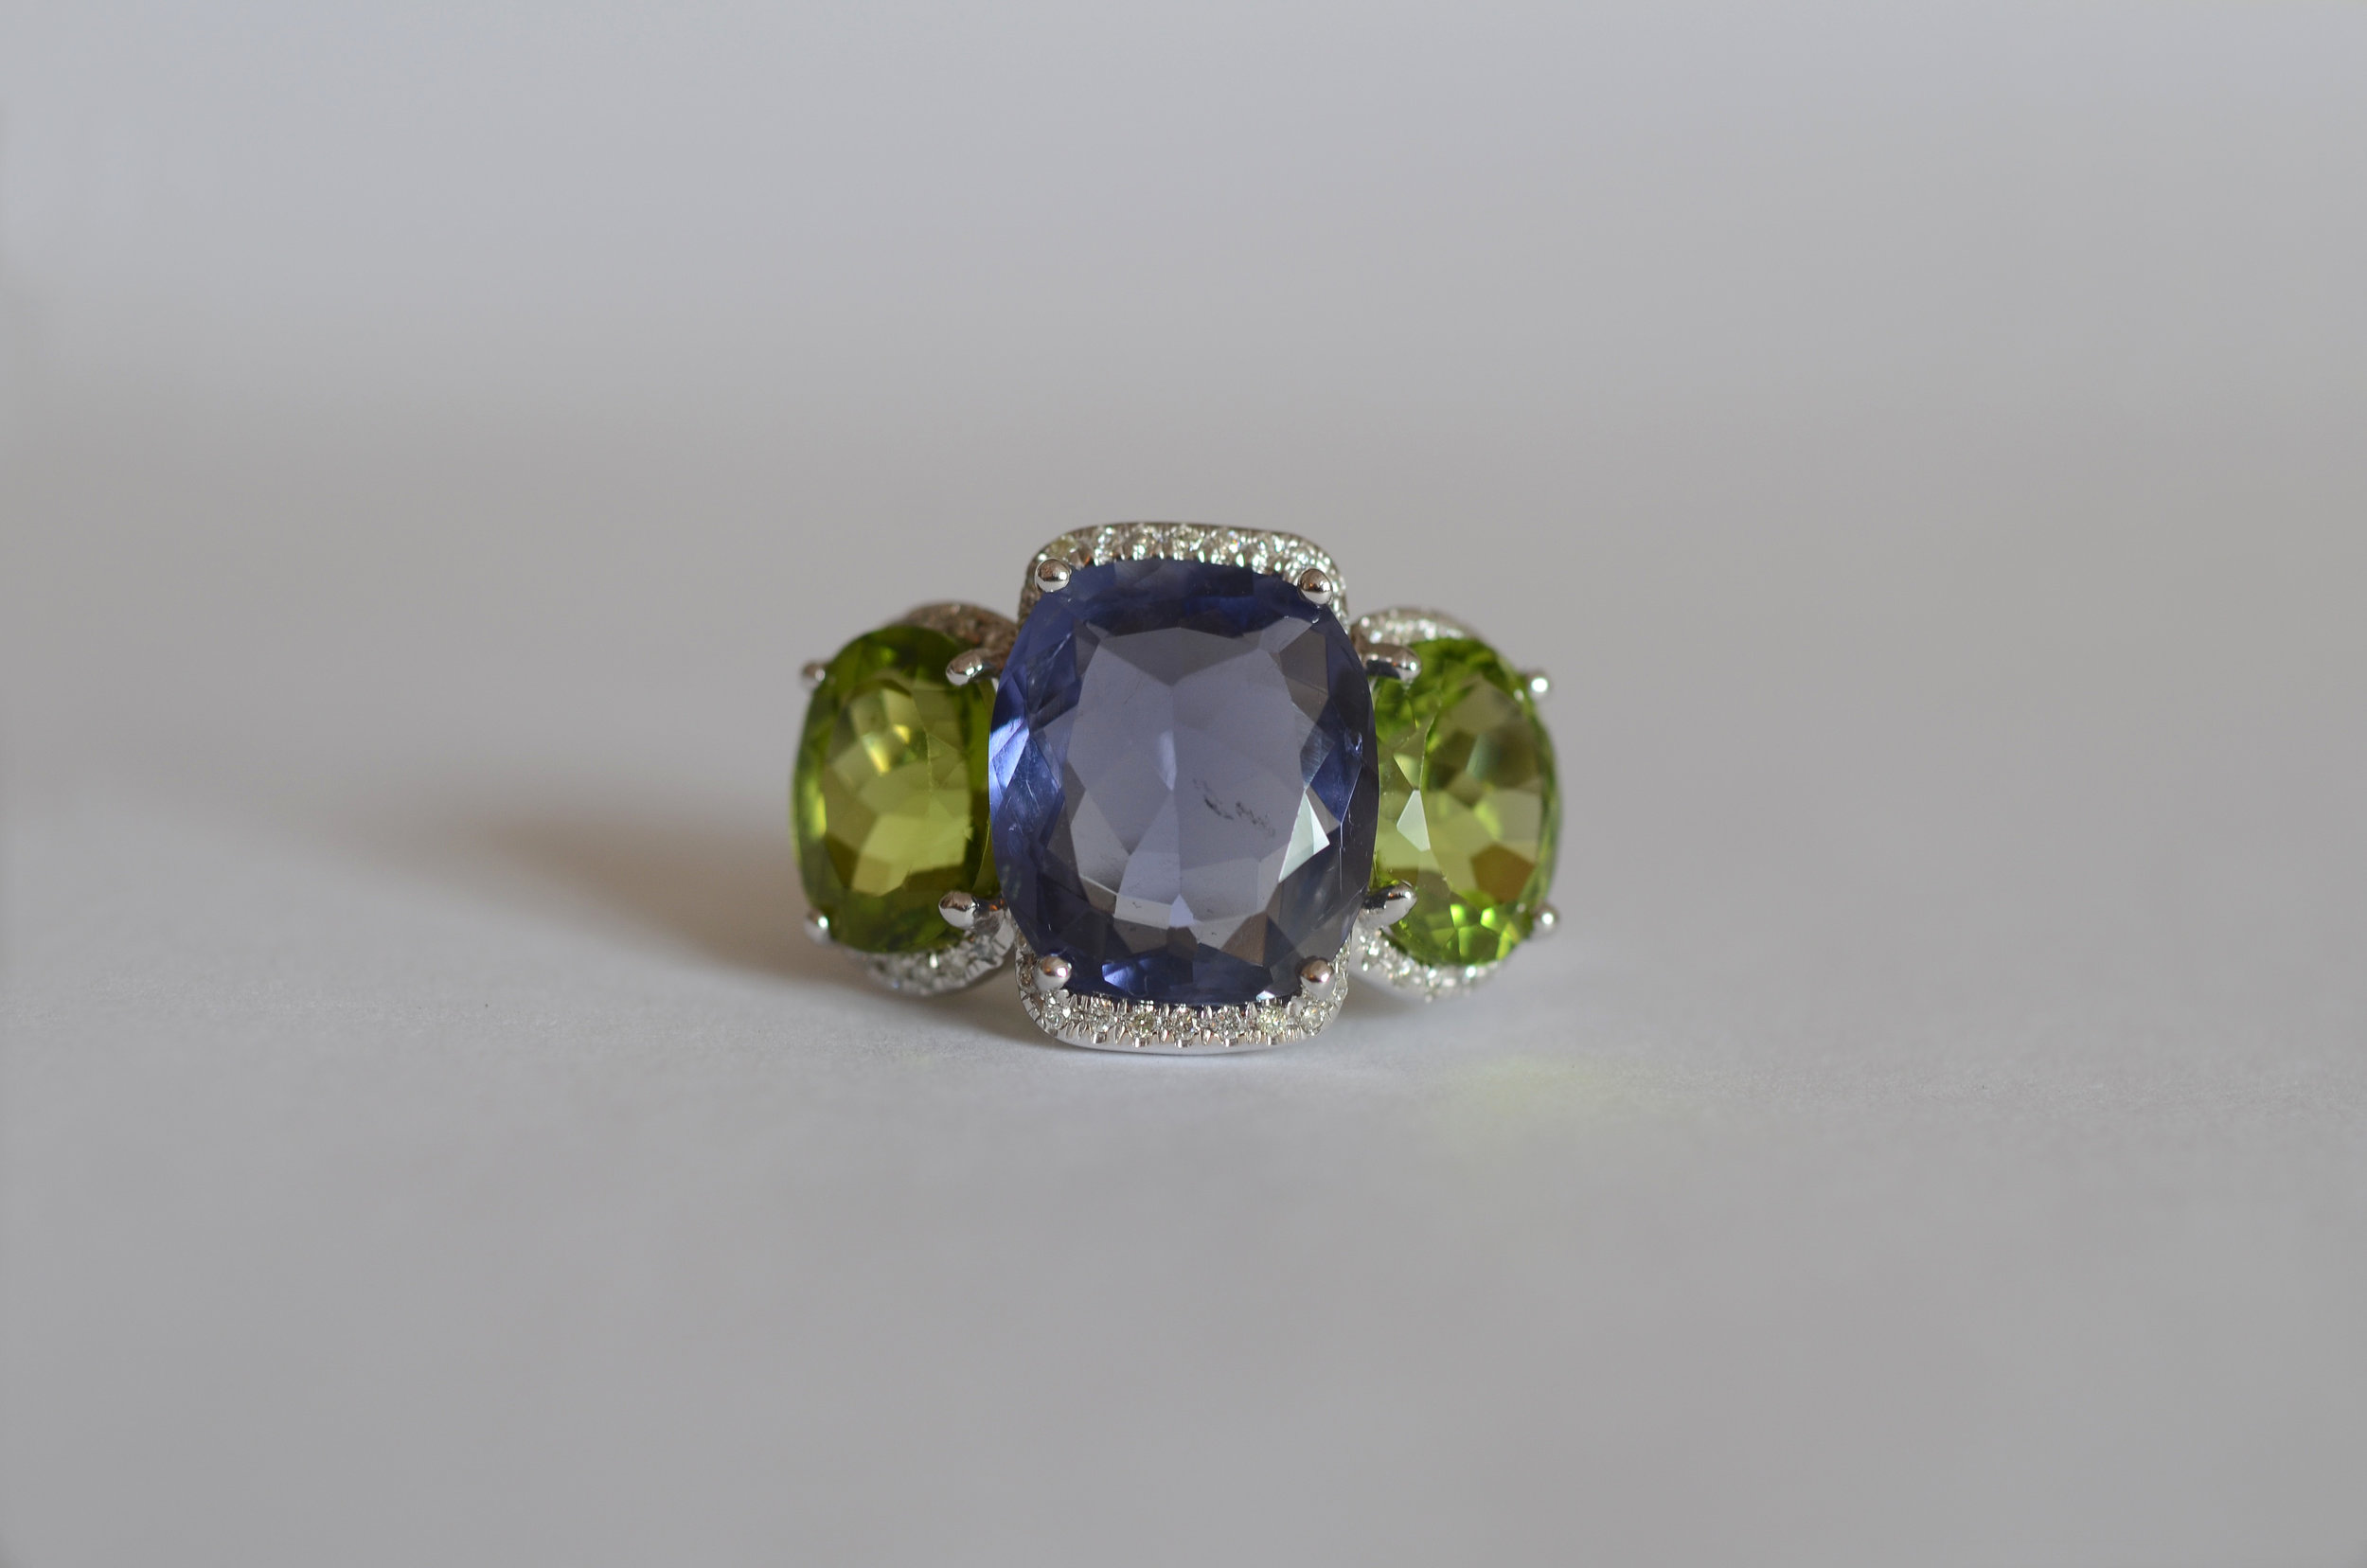 7.47 Carat Iolite and 9.10 Carat Peridot Ring accented with .30 Carat Diamonds set in 18kt White Gold